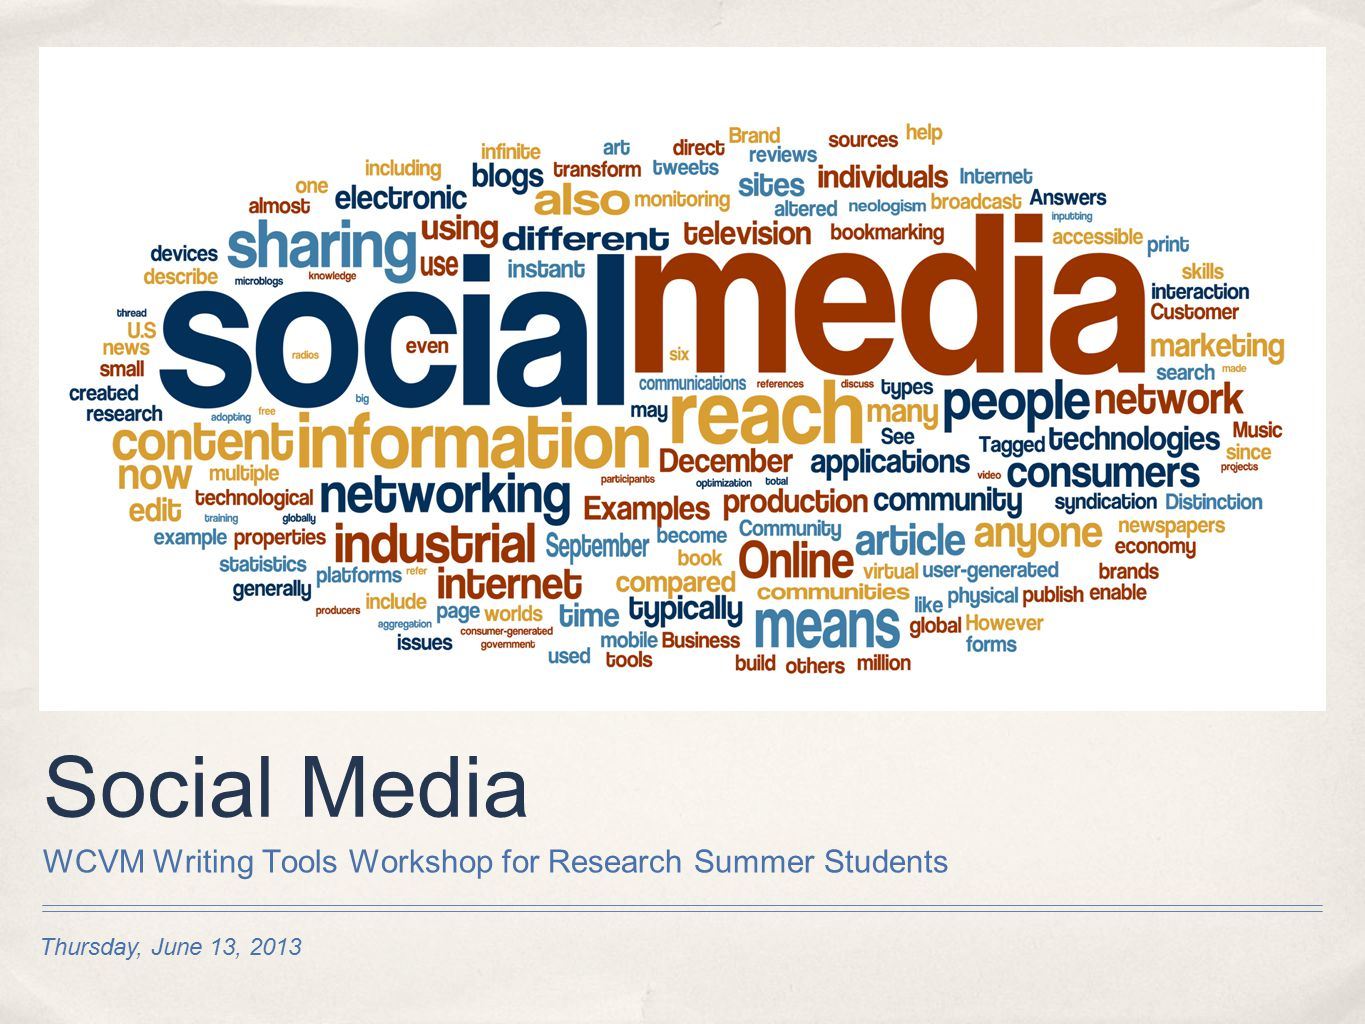 Thursday, June 13, 2013 Social Media WCVM Writing Tools Workshop for Research Summer Students